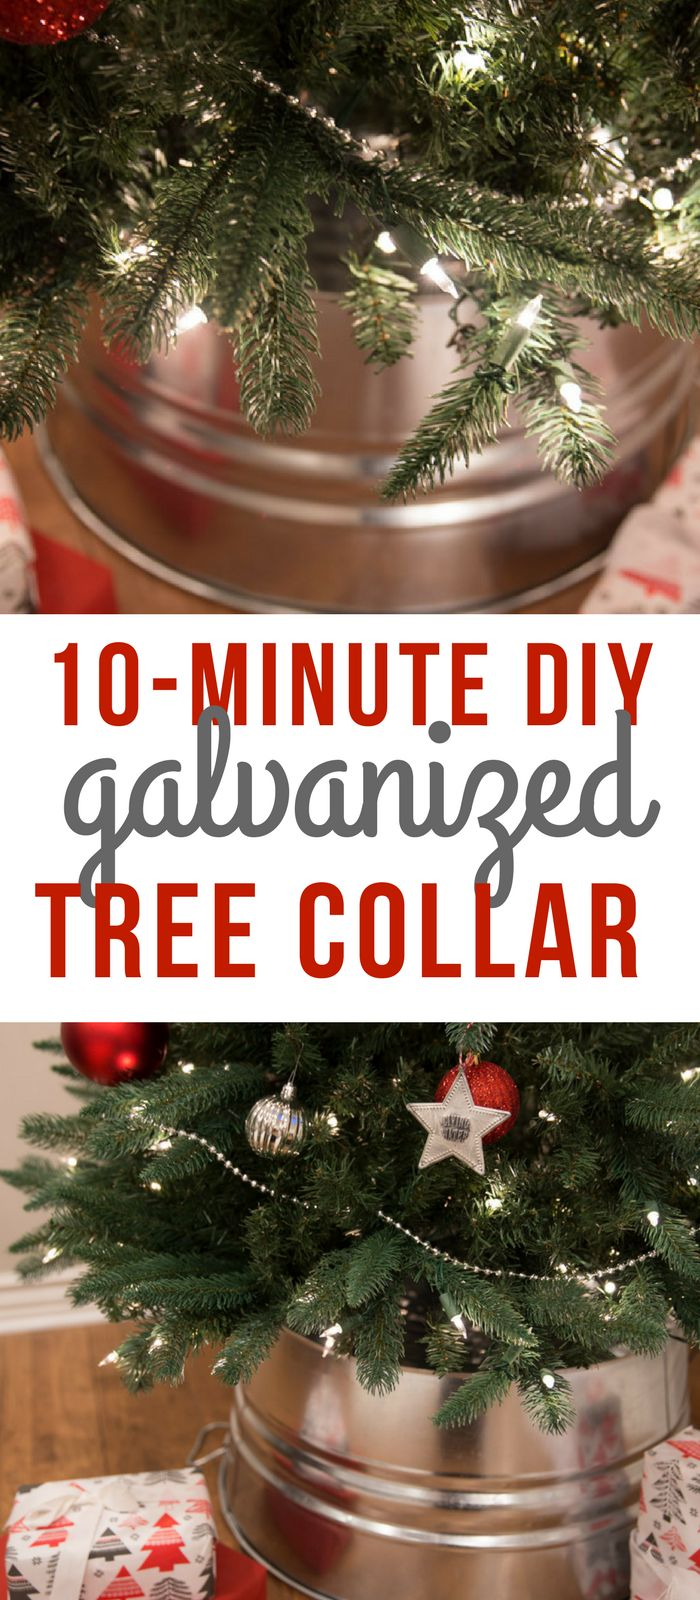 DIY Galvanized Christmas Tree Collar Tutorial- Cheap Galvanized Tree Skirt Idea-